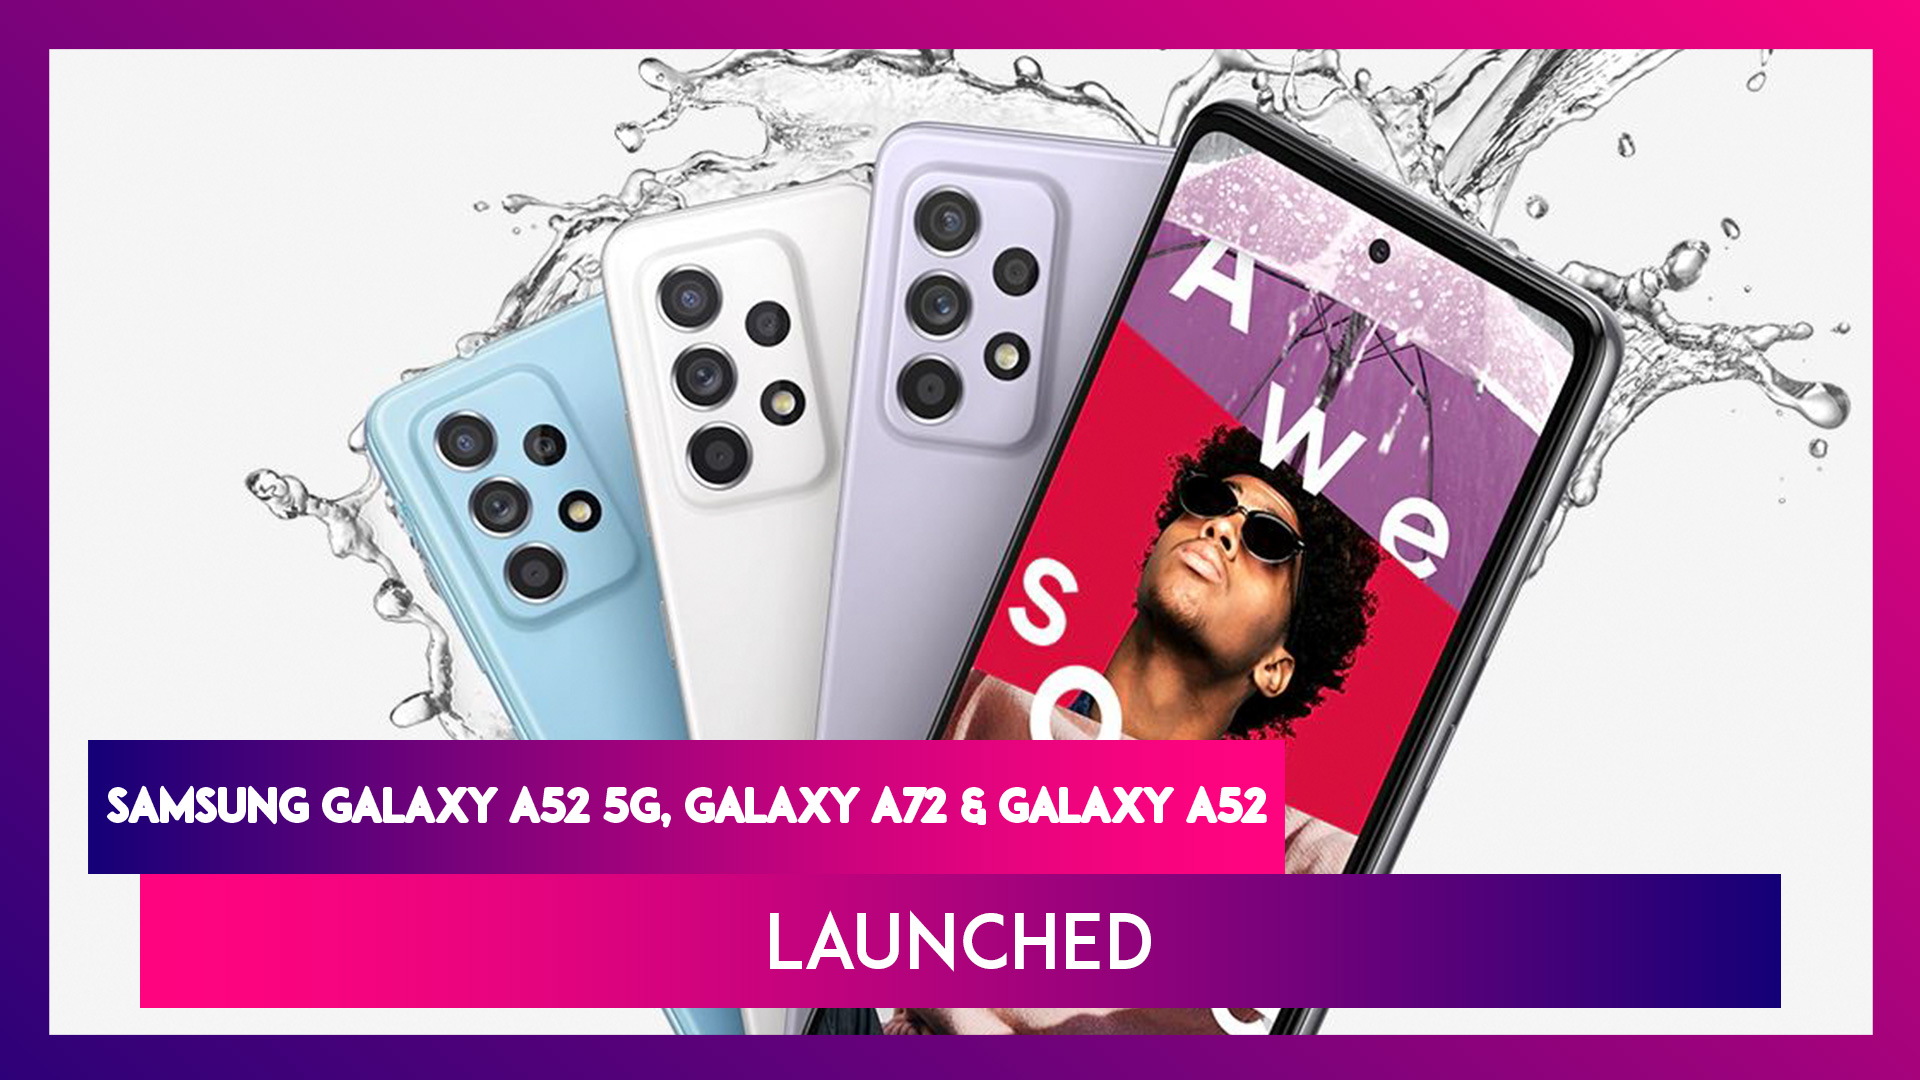 Samsung Galaxy A72, Galaxy A52 & Galaxy A52 5G Launched; Check Prices, Features & Specifications